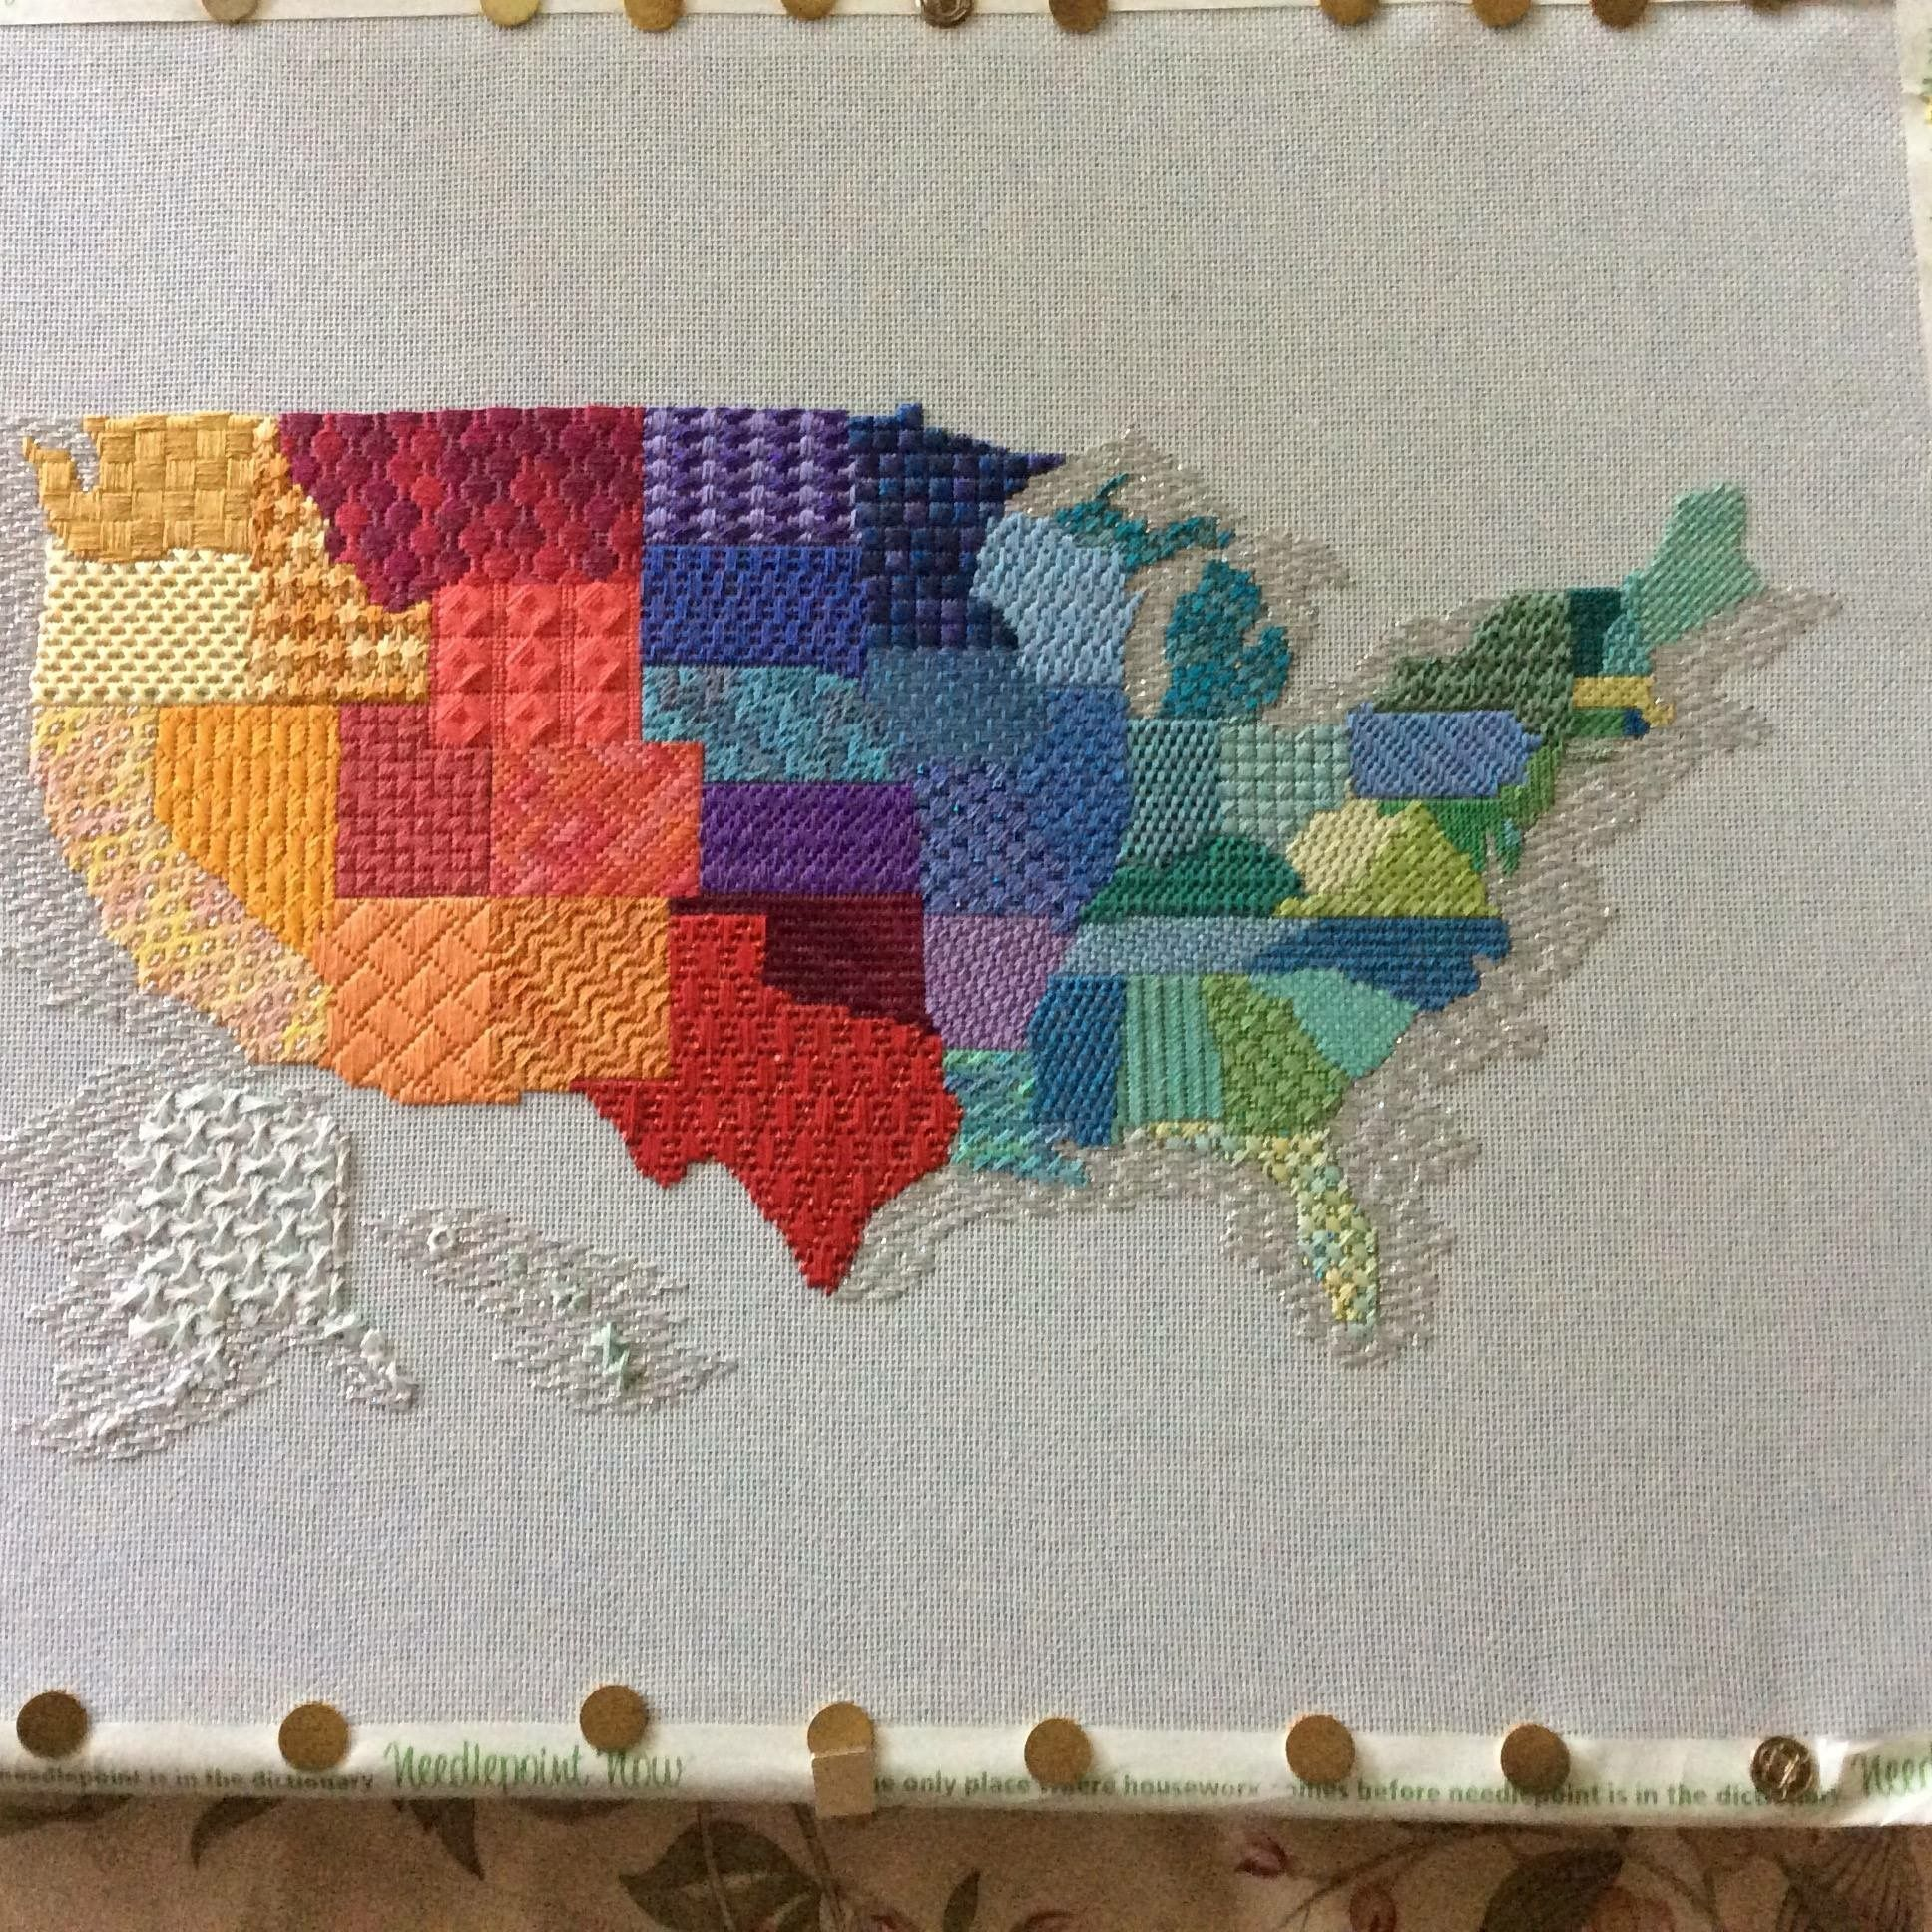 United States Map Needlepoint Possibly Gail Sirna Design Cross